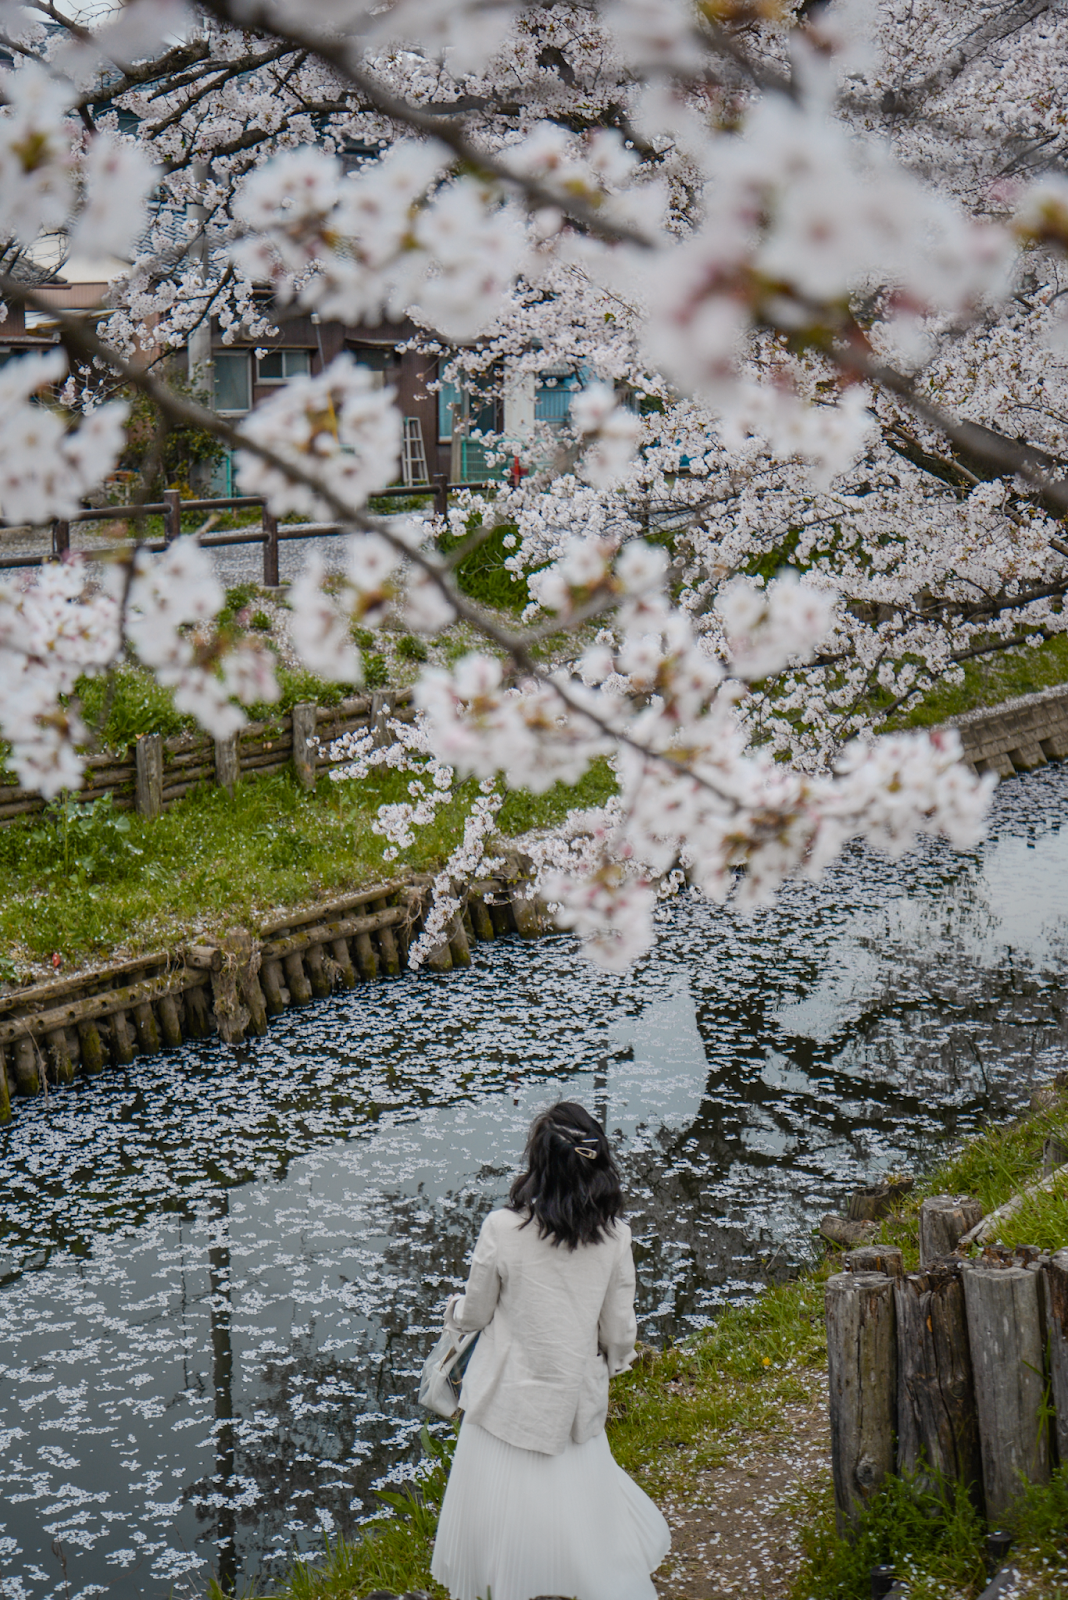 Cherry blossom photo ideas, Tokyo's Not So Secret Cherry Blossoms Spots That You Might Not Know Of - Style and Travel Blogger Van Le (FOREVERVANNY.com)